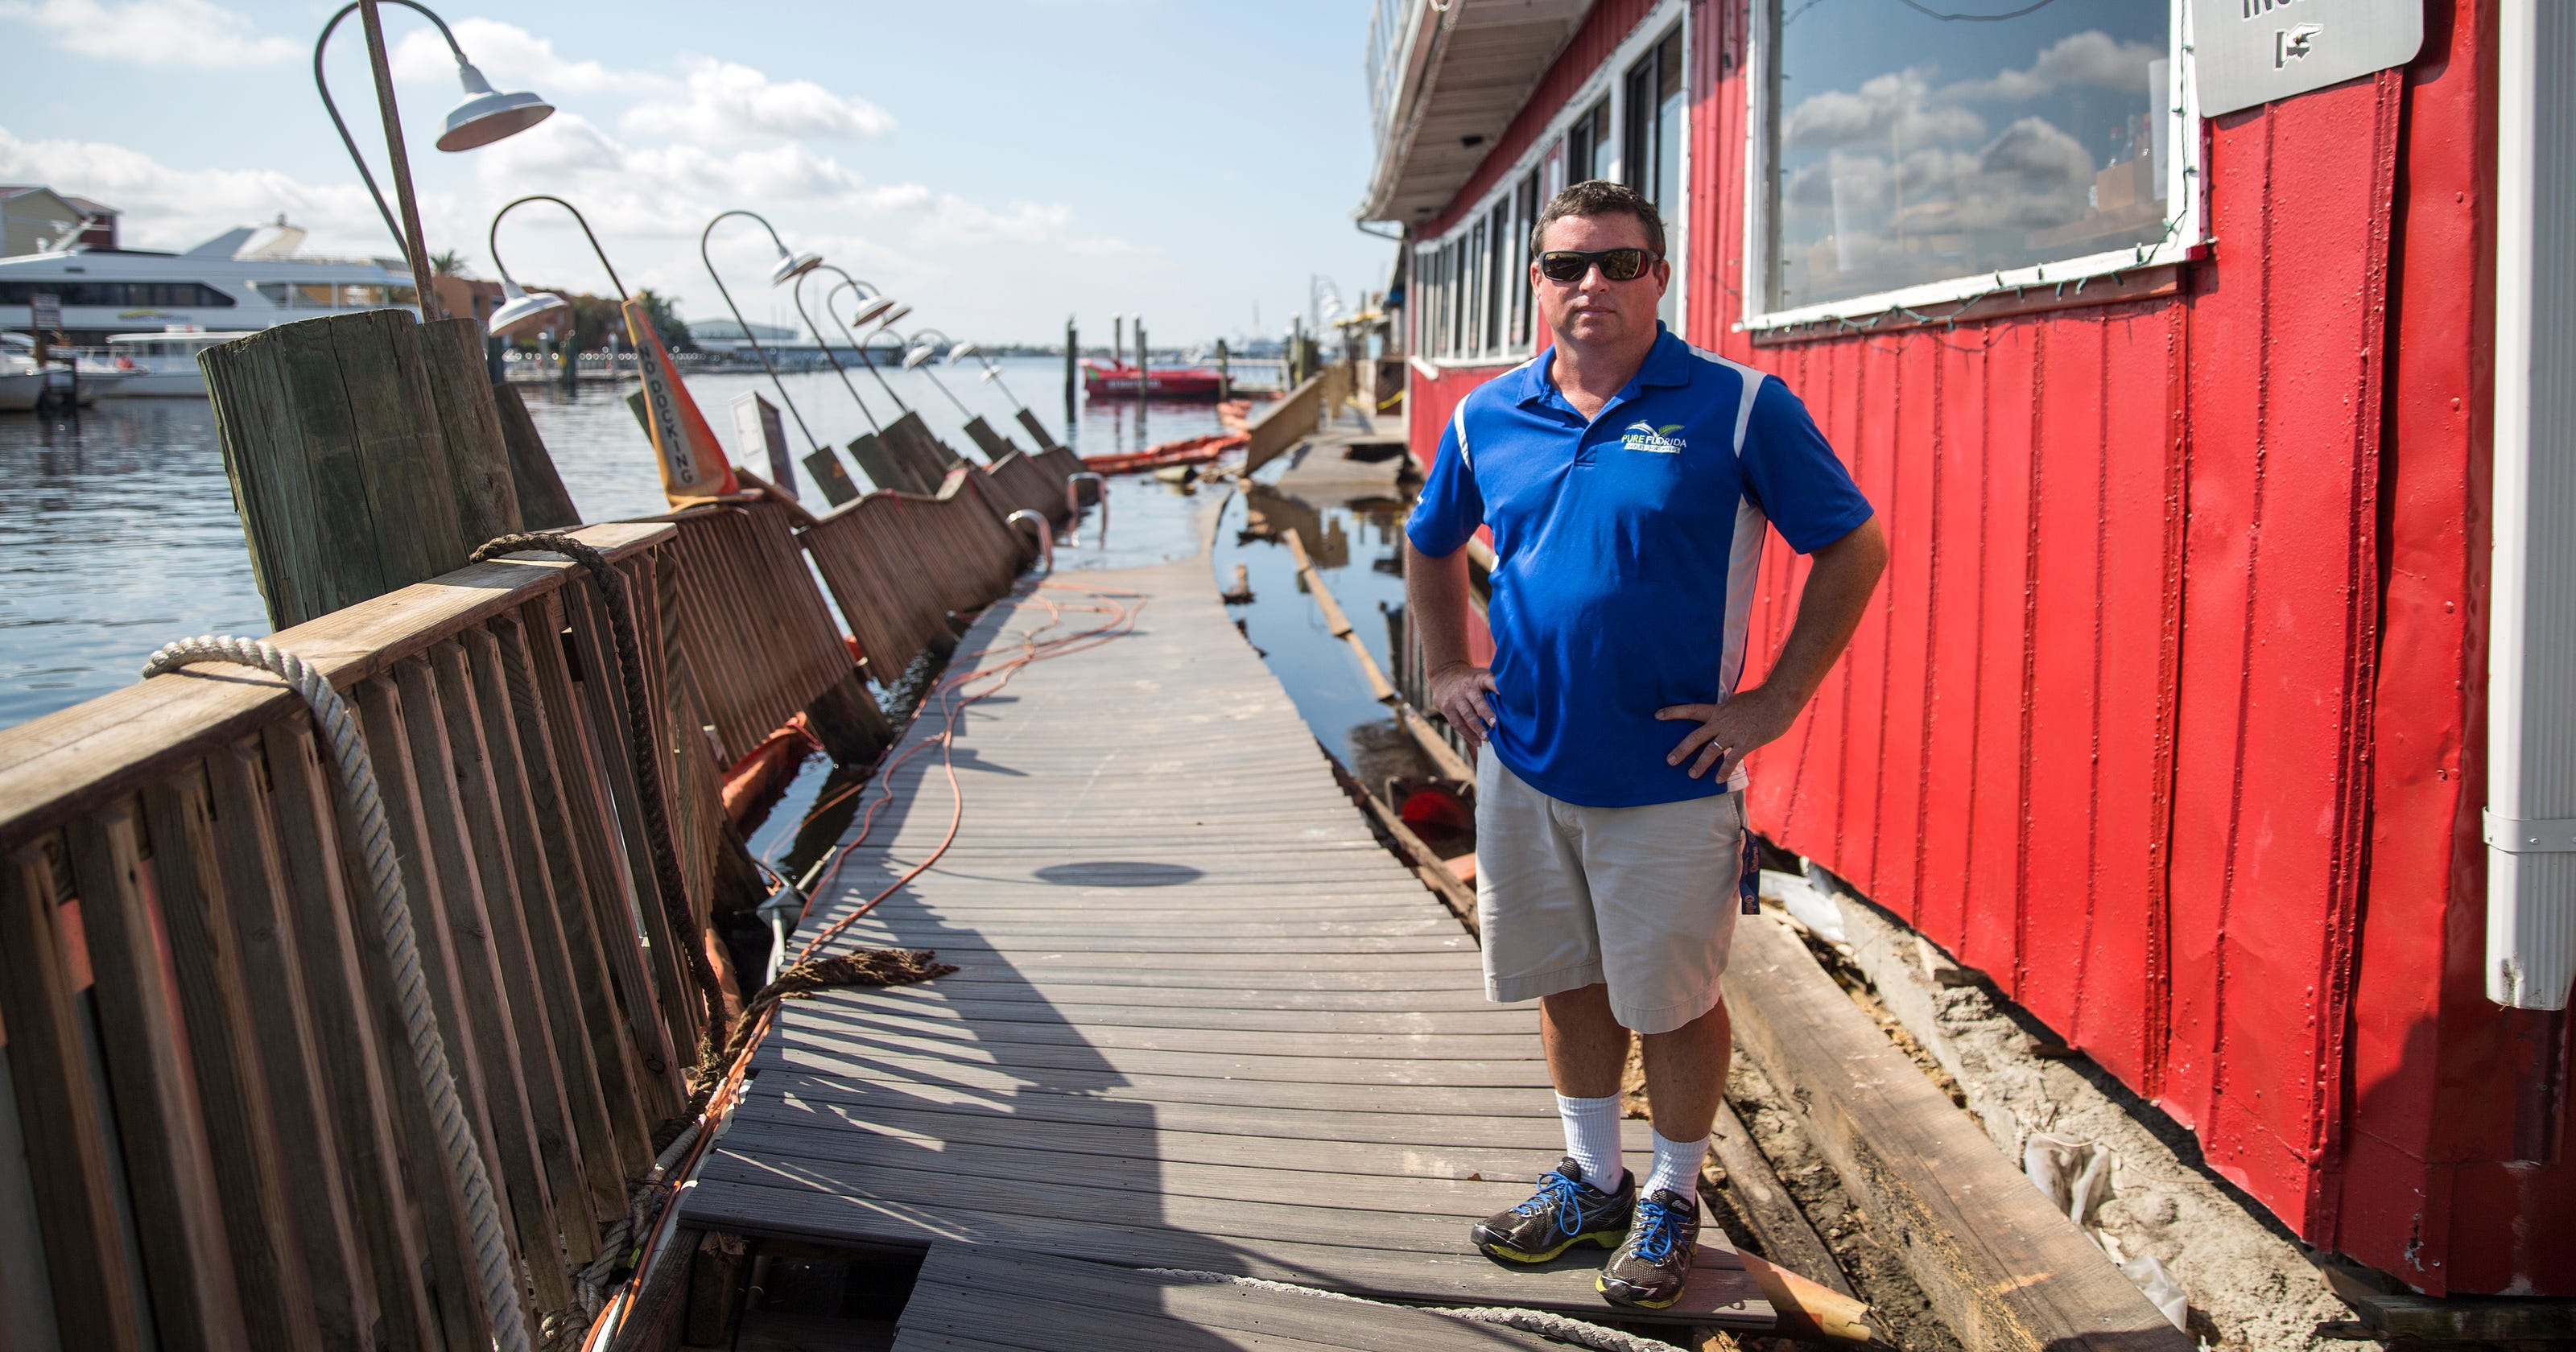 24eba9991a79 Southwest Florida s tourism industry still hurting from Irma